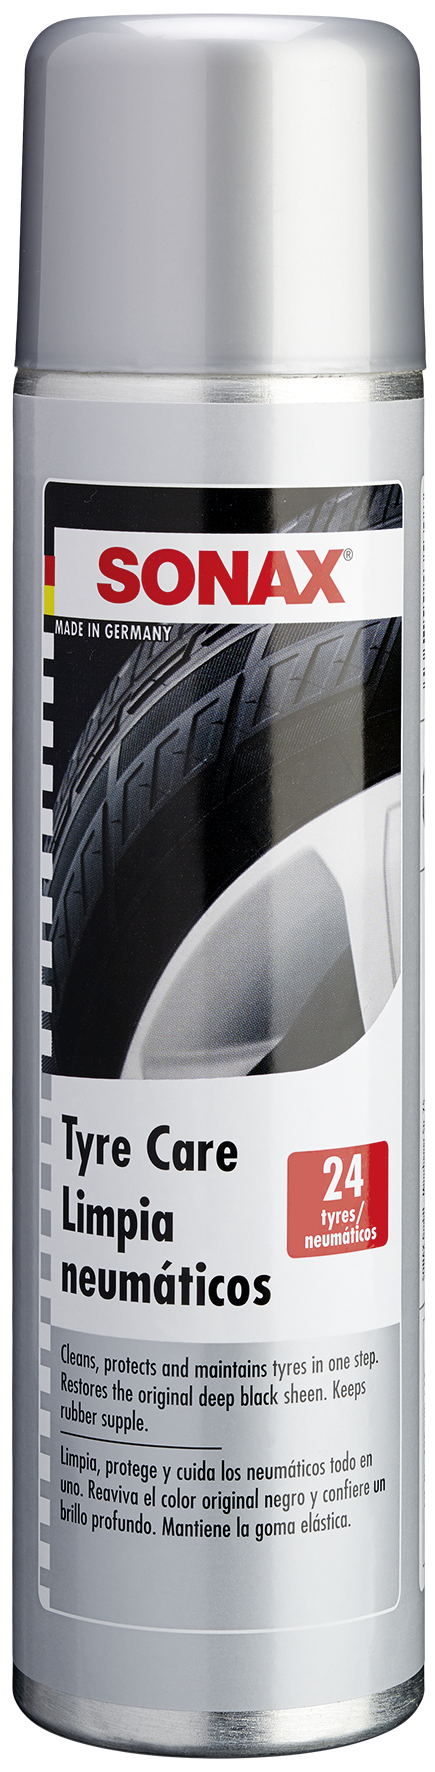 SONAX Tyre Care